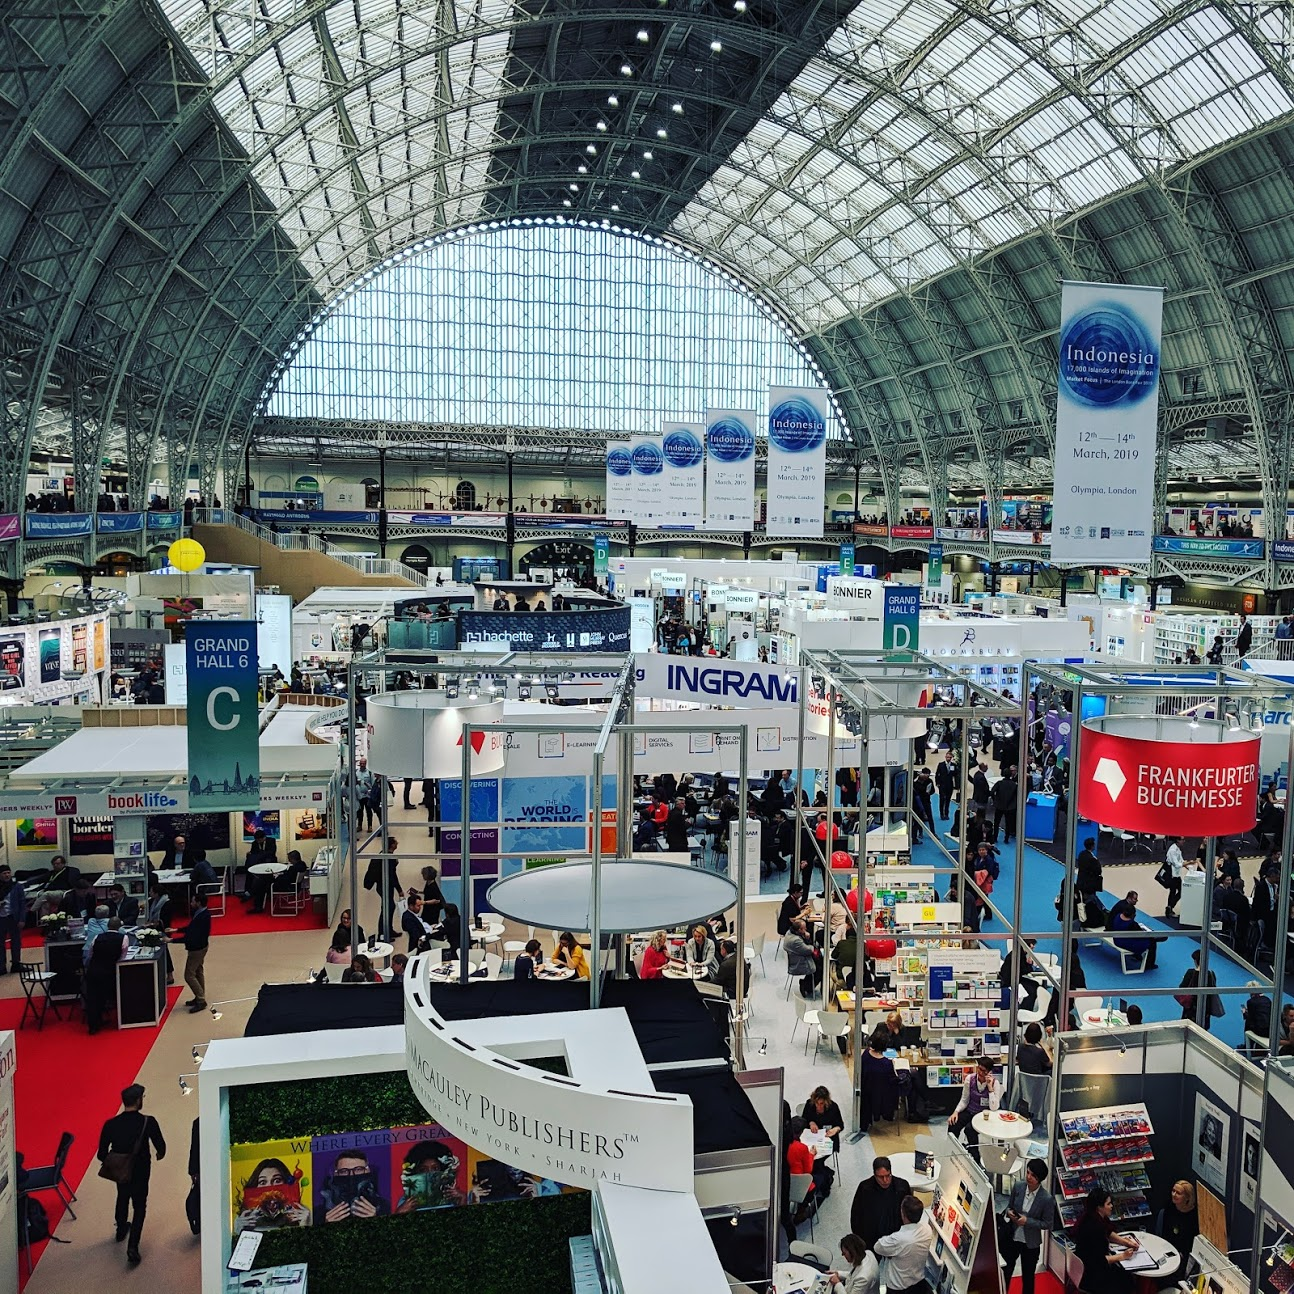 The Top 2019 London Book Fair Take-Aways & Trends by Kiffer